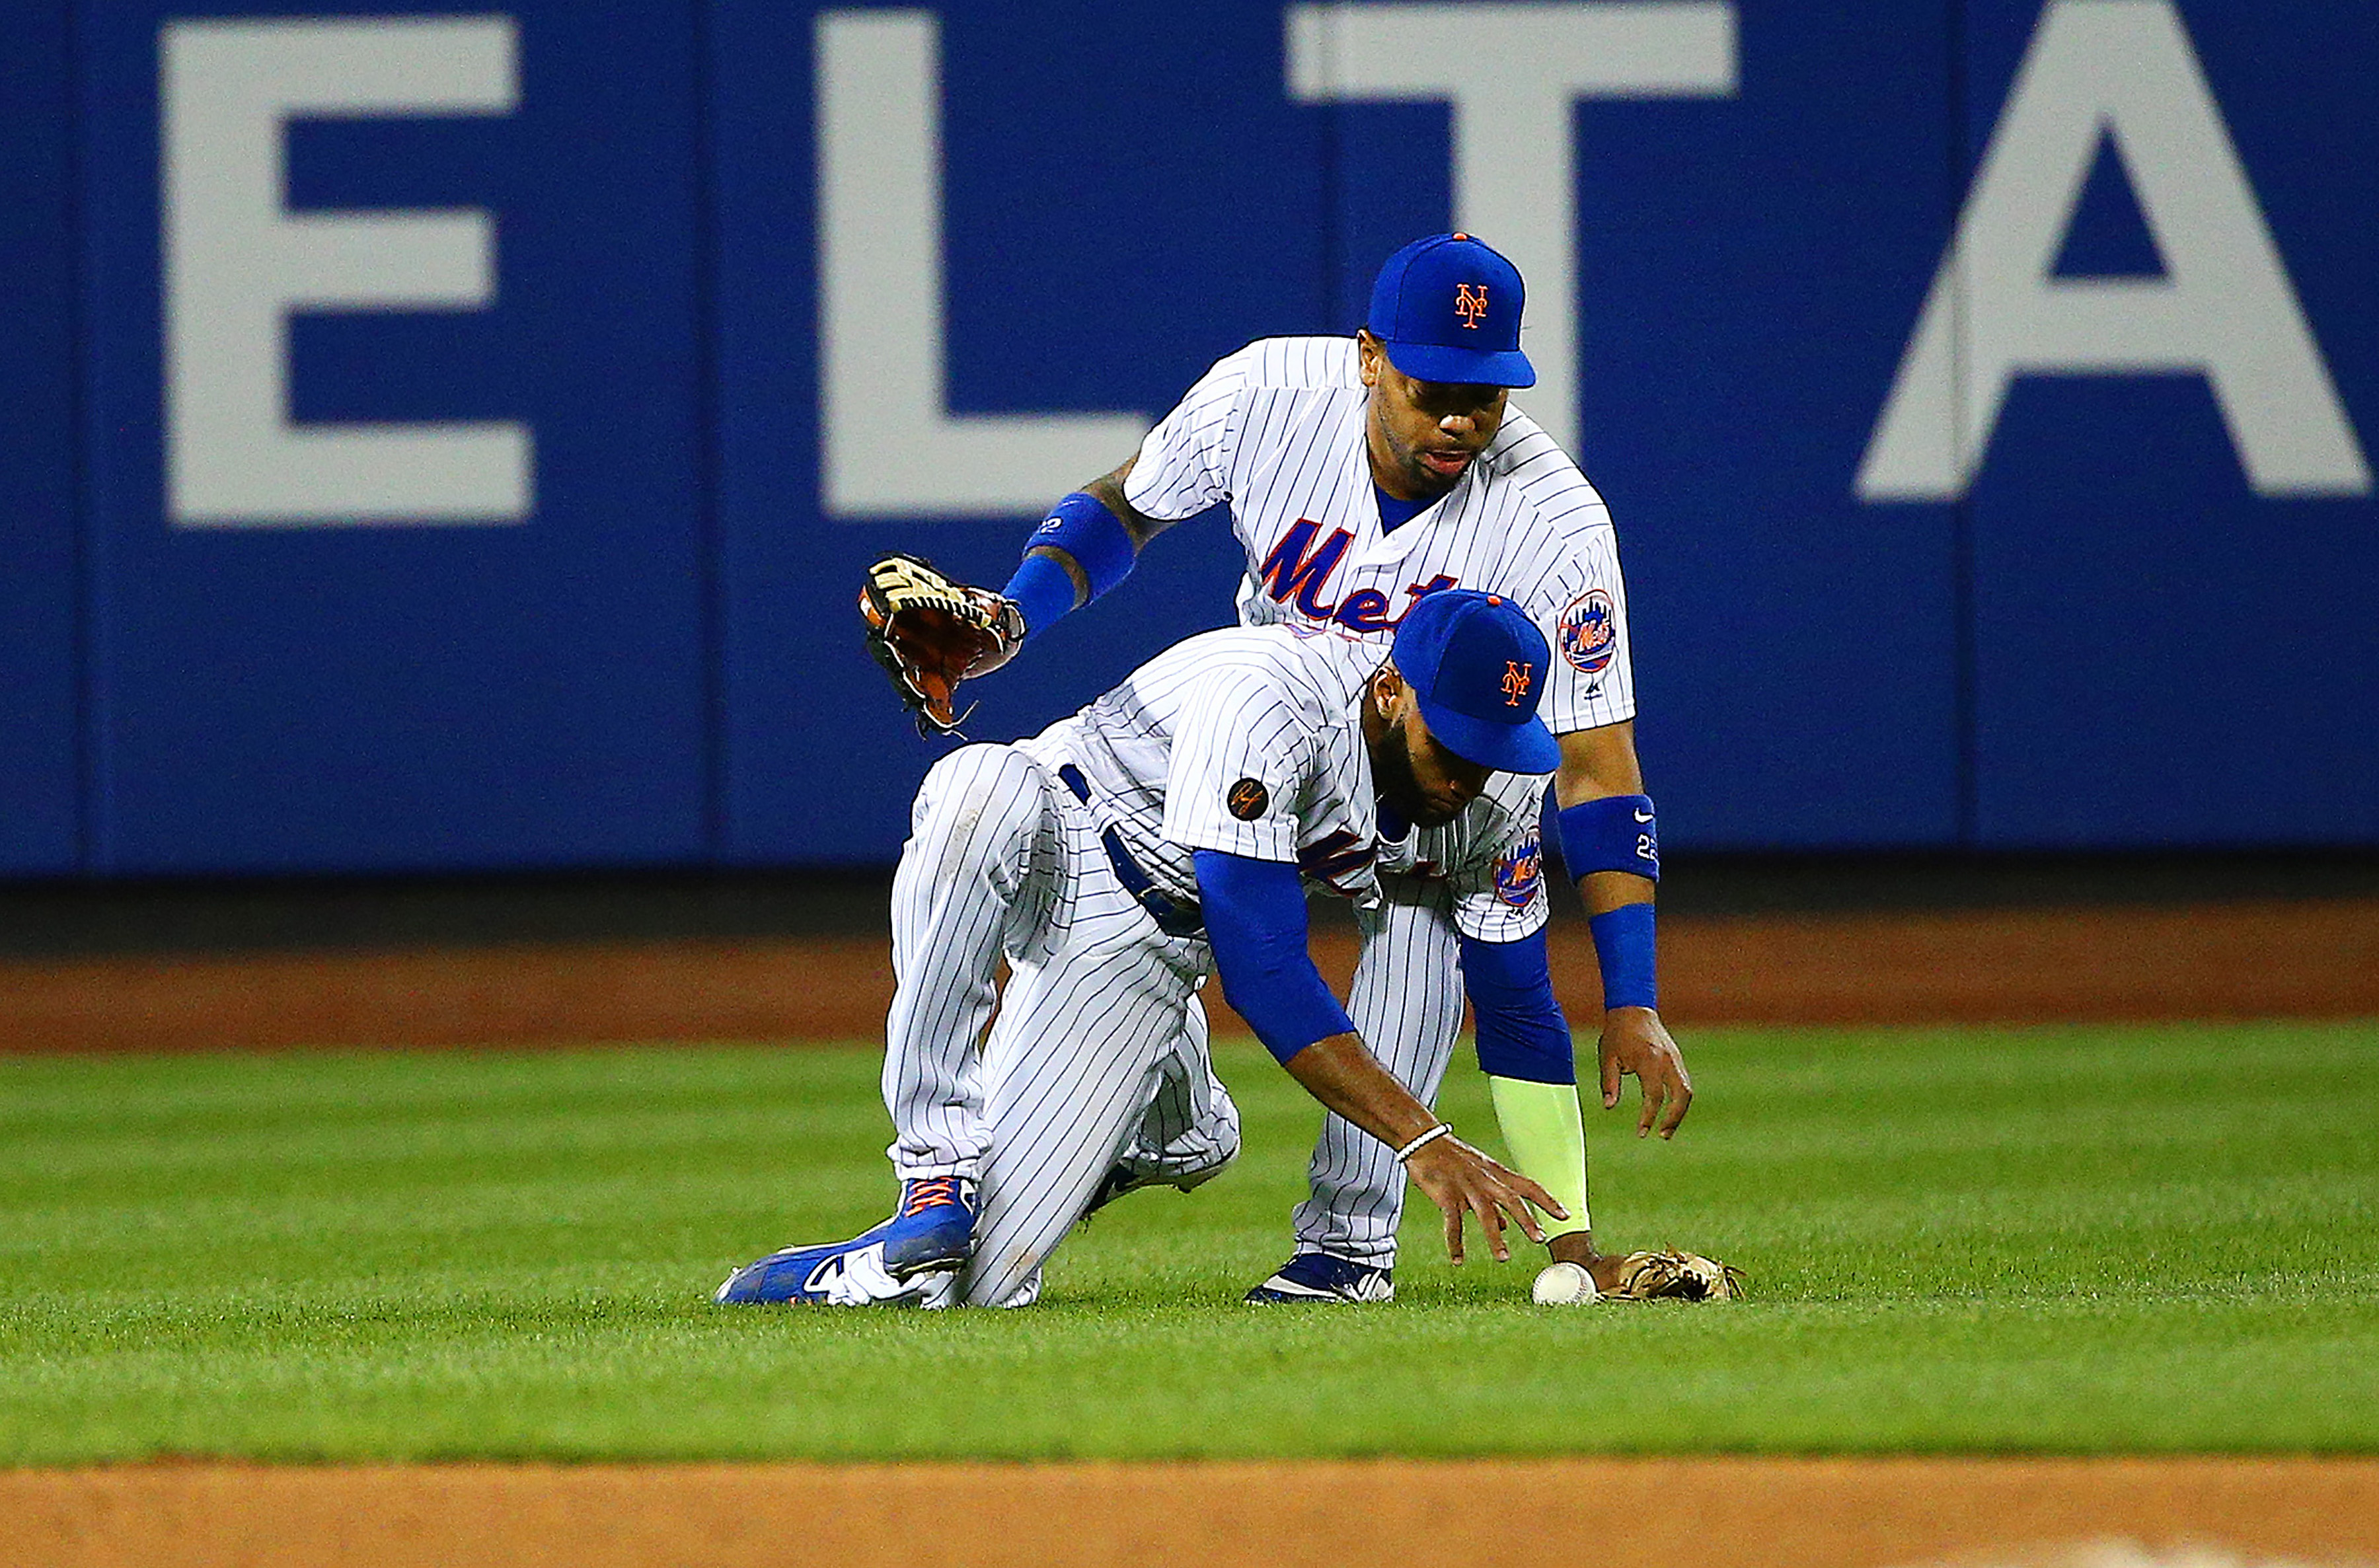 New York Mets Need To Stay Consistent With Their Message About Defense